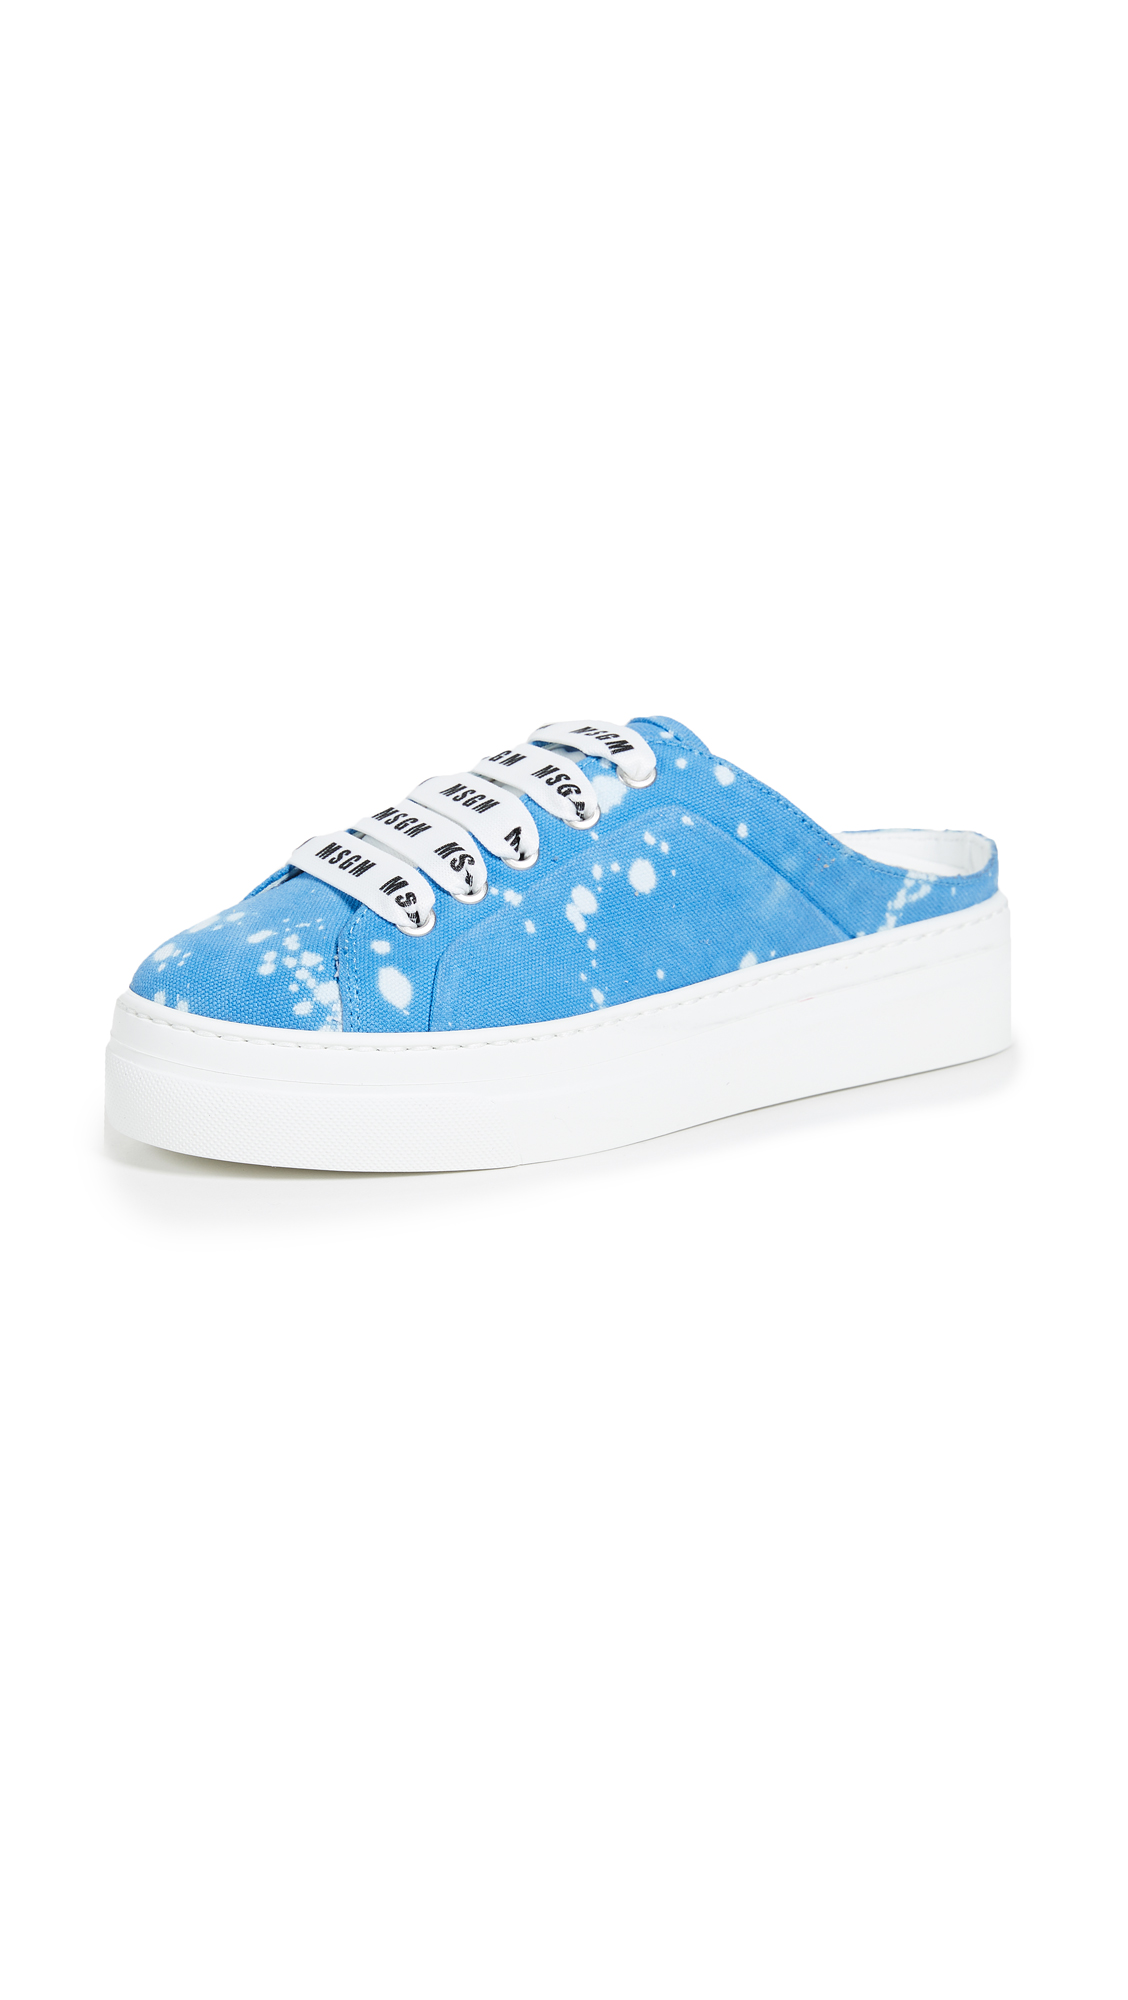 MSGM Two Tone Drip Mule Sneakers - Blue/White